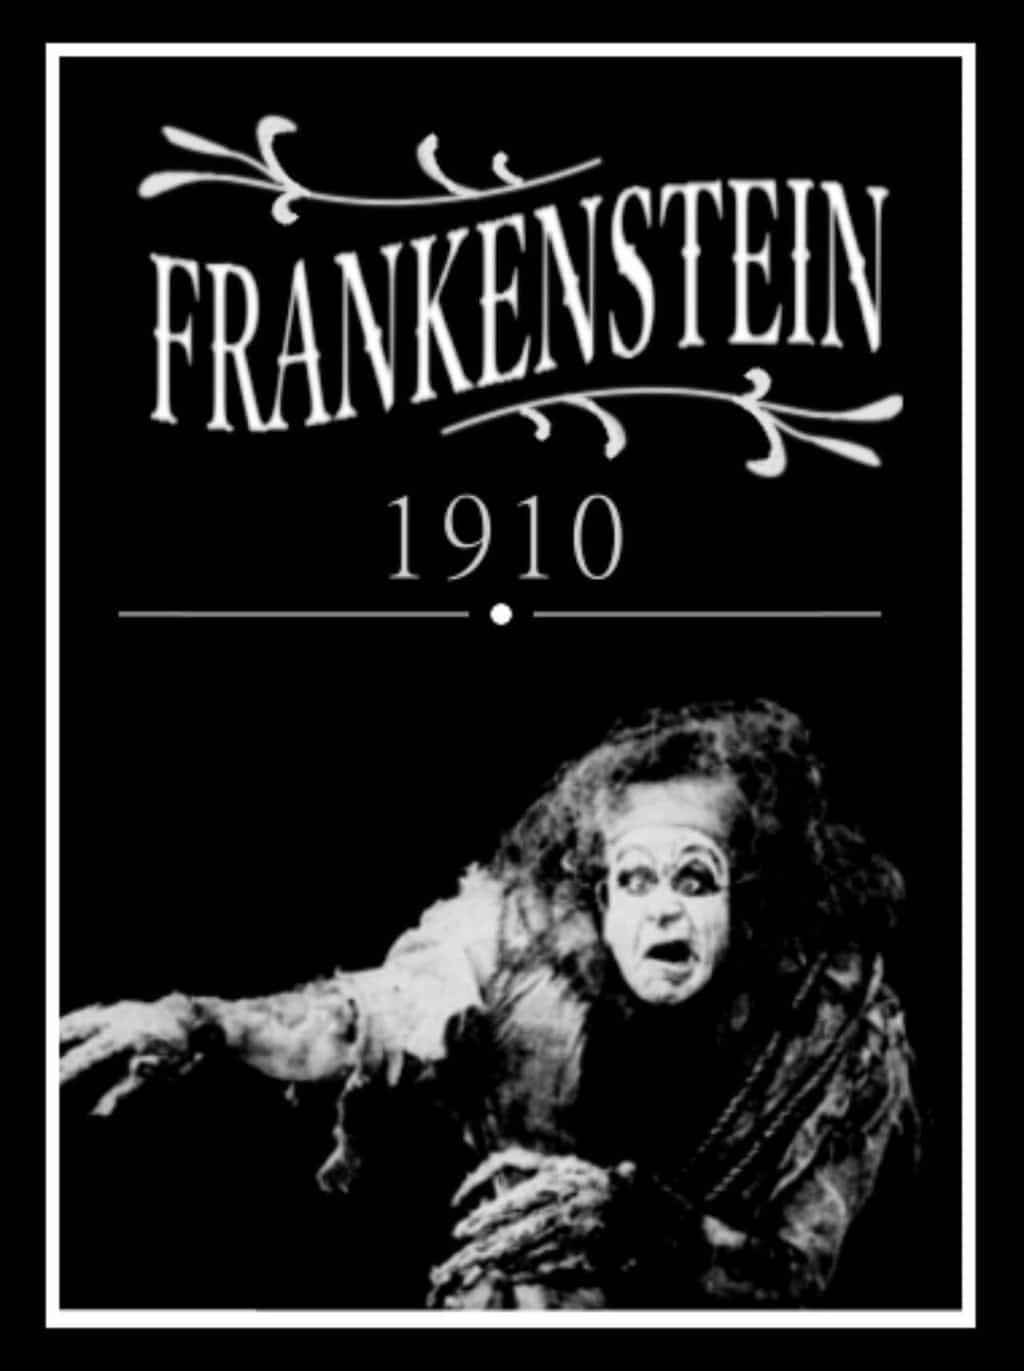 Frankenstein (1910) - J. Searle Dawley